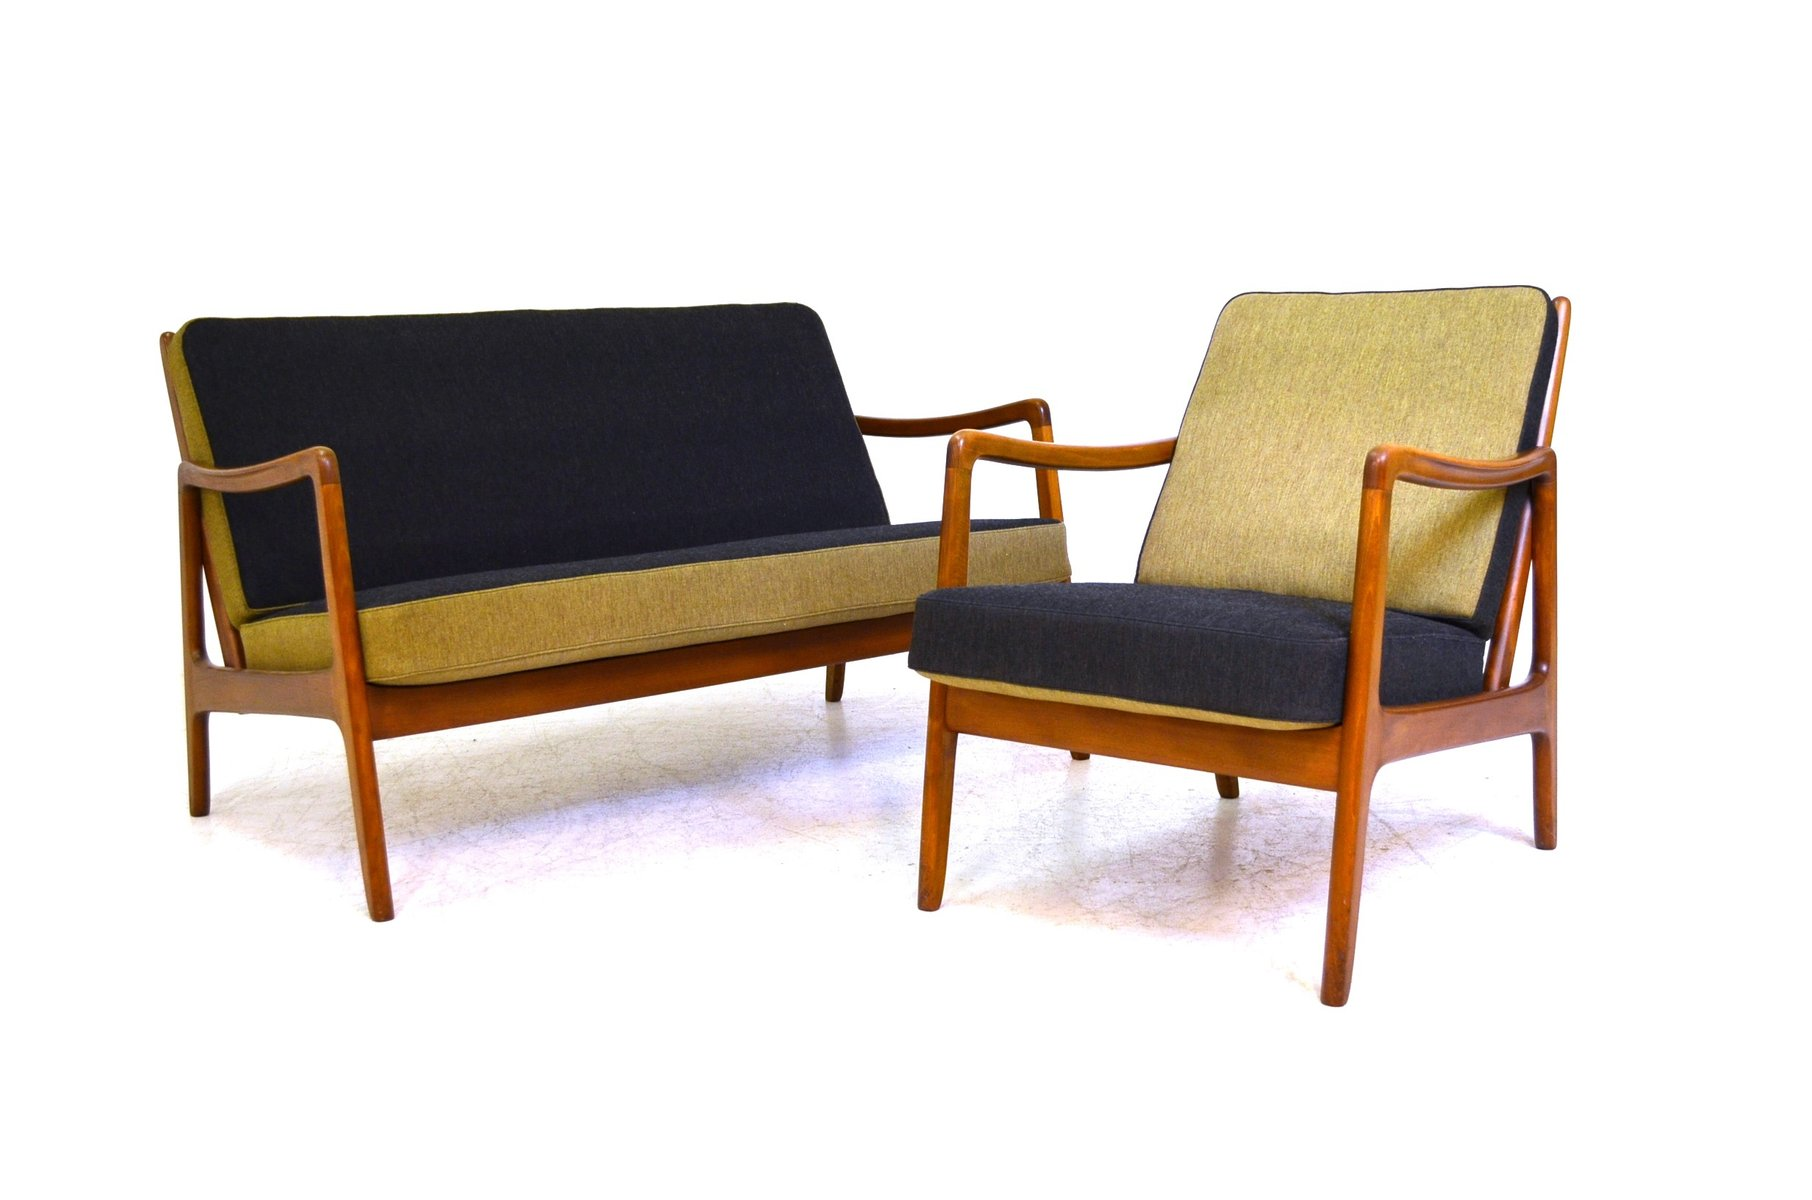 sofa set with easy chair by ole wanscher for france daverkosen for sale at pamono. Black Bedroom Furniture Sets. Home Design Ideas